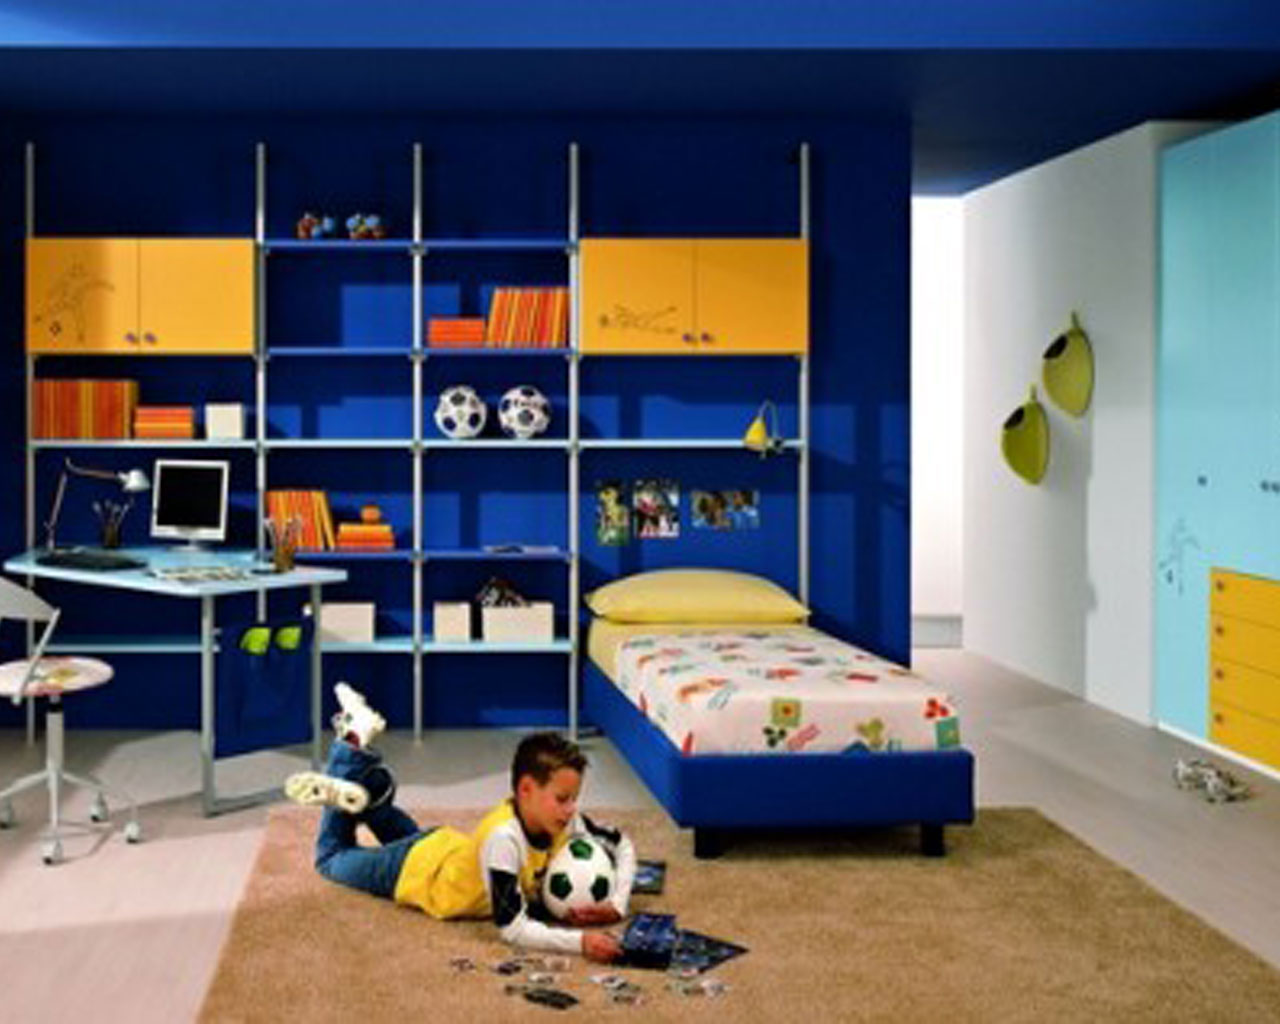 Free download 10 Year Old Boy Bedroom Ideas [1280x1024] for ...